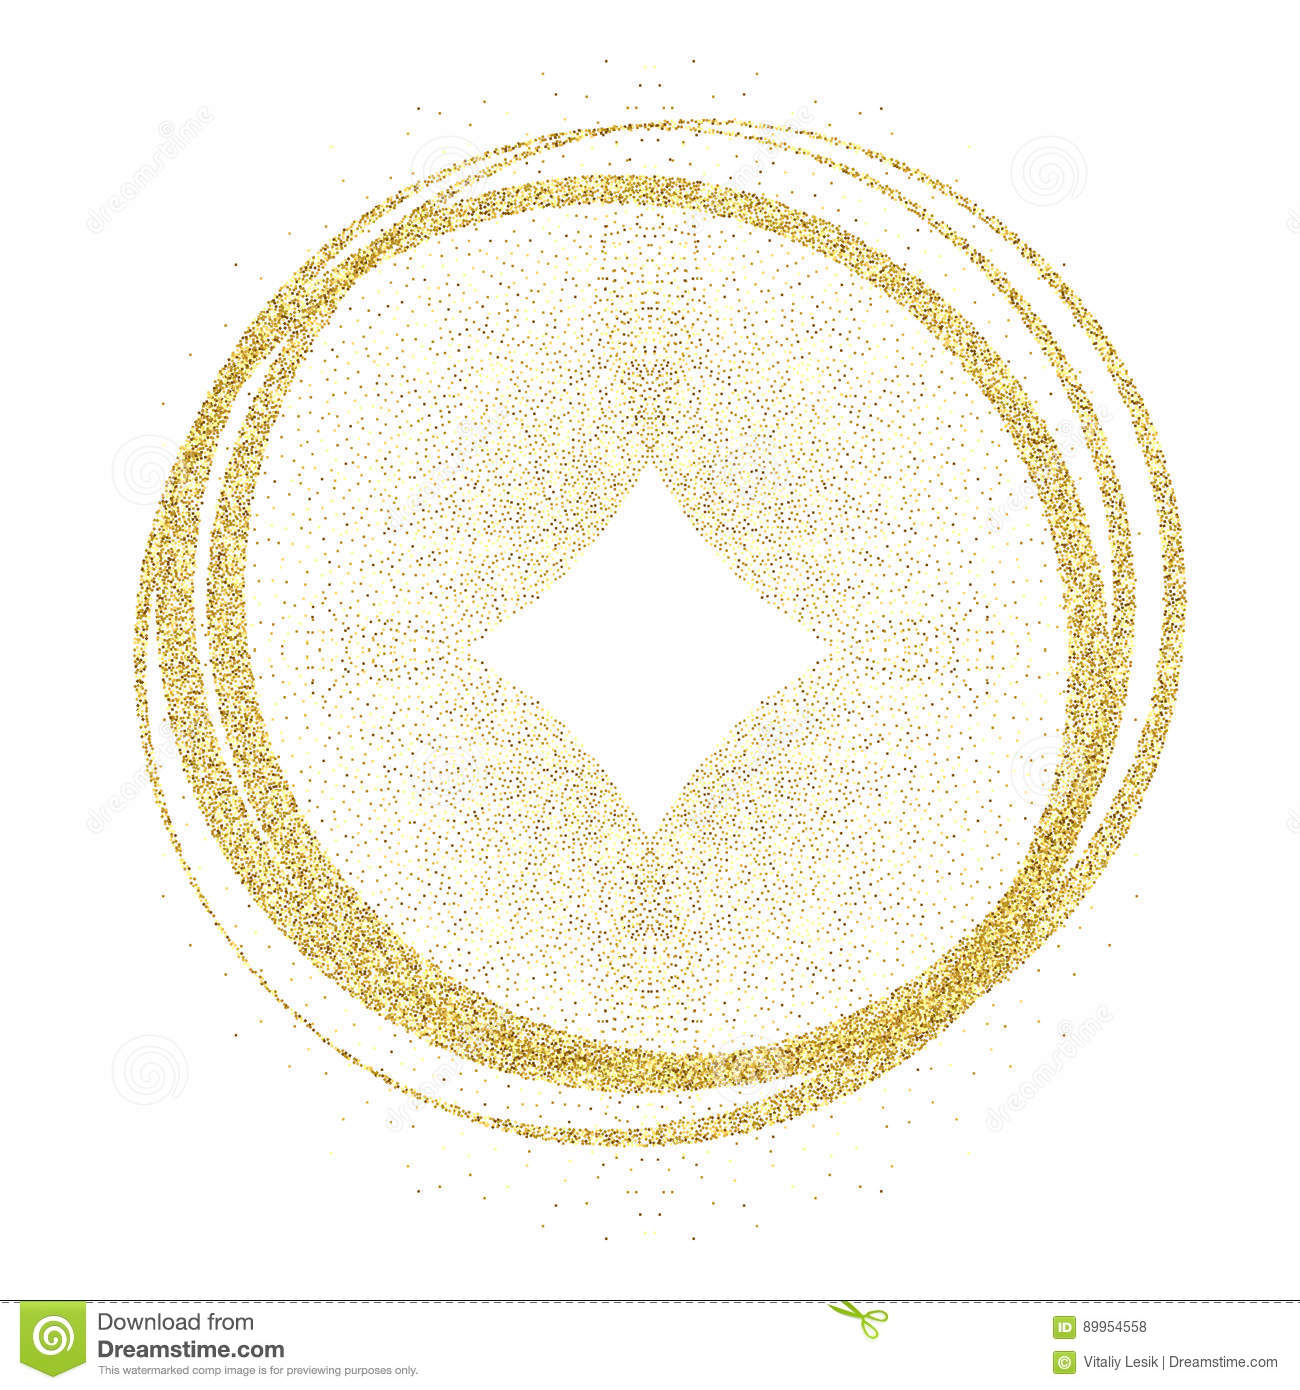 Golden circles and rings. Decoration design element of gold foil gilding texture. Festive background for New Year and